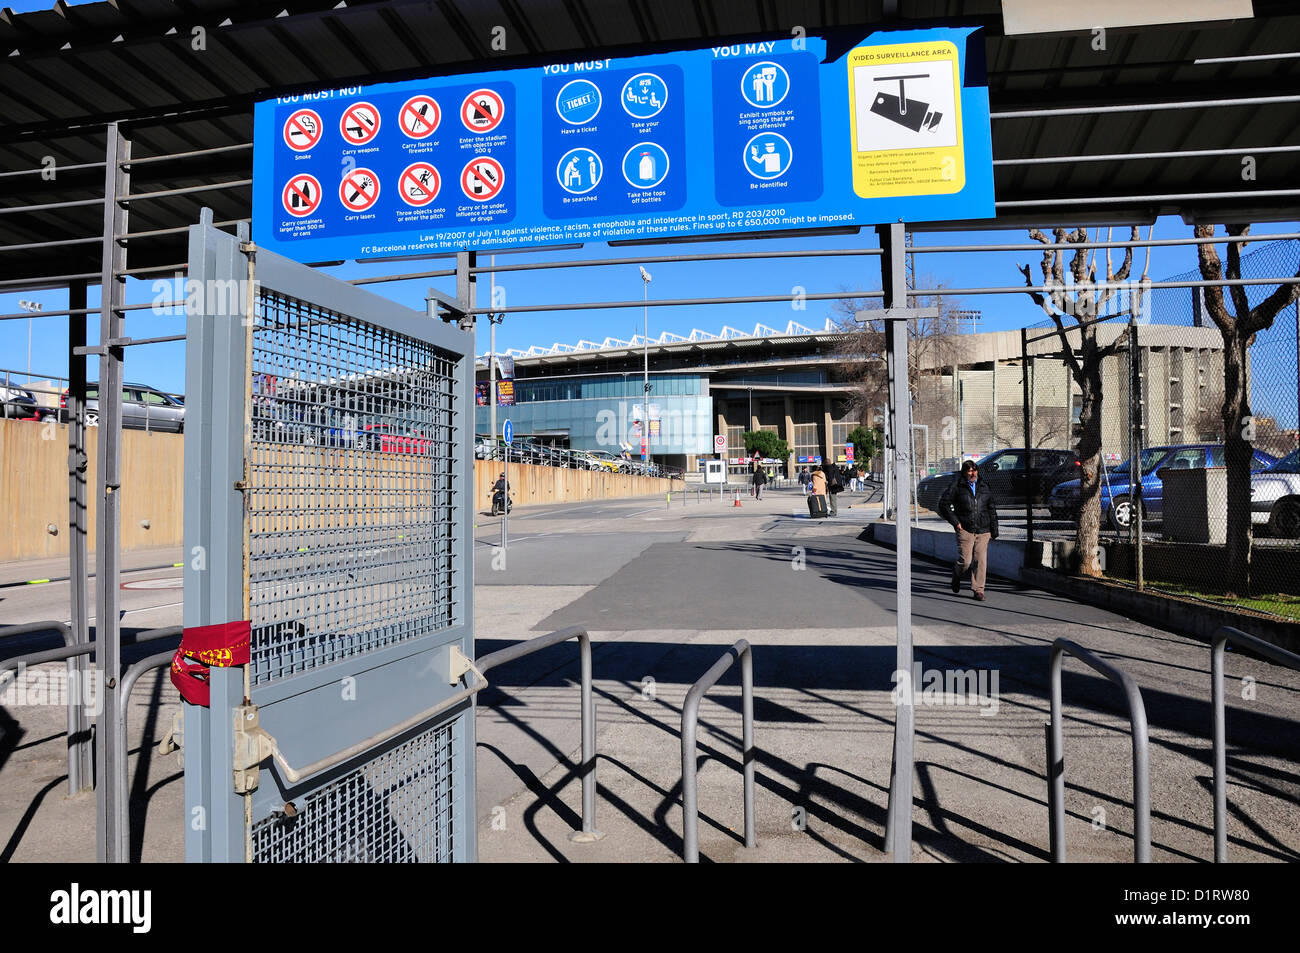 Barcelona, Catalonia, Spain. Camp Nou football stadium (1957) home of F C Barcelona. Entry gates and sign in English - Stock Image